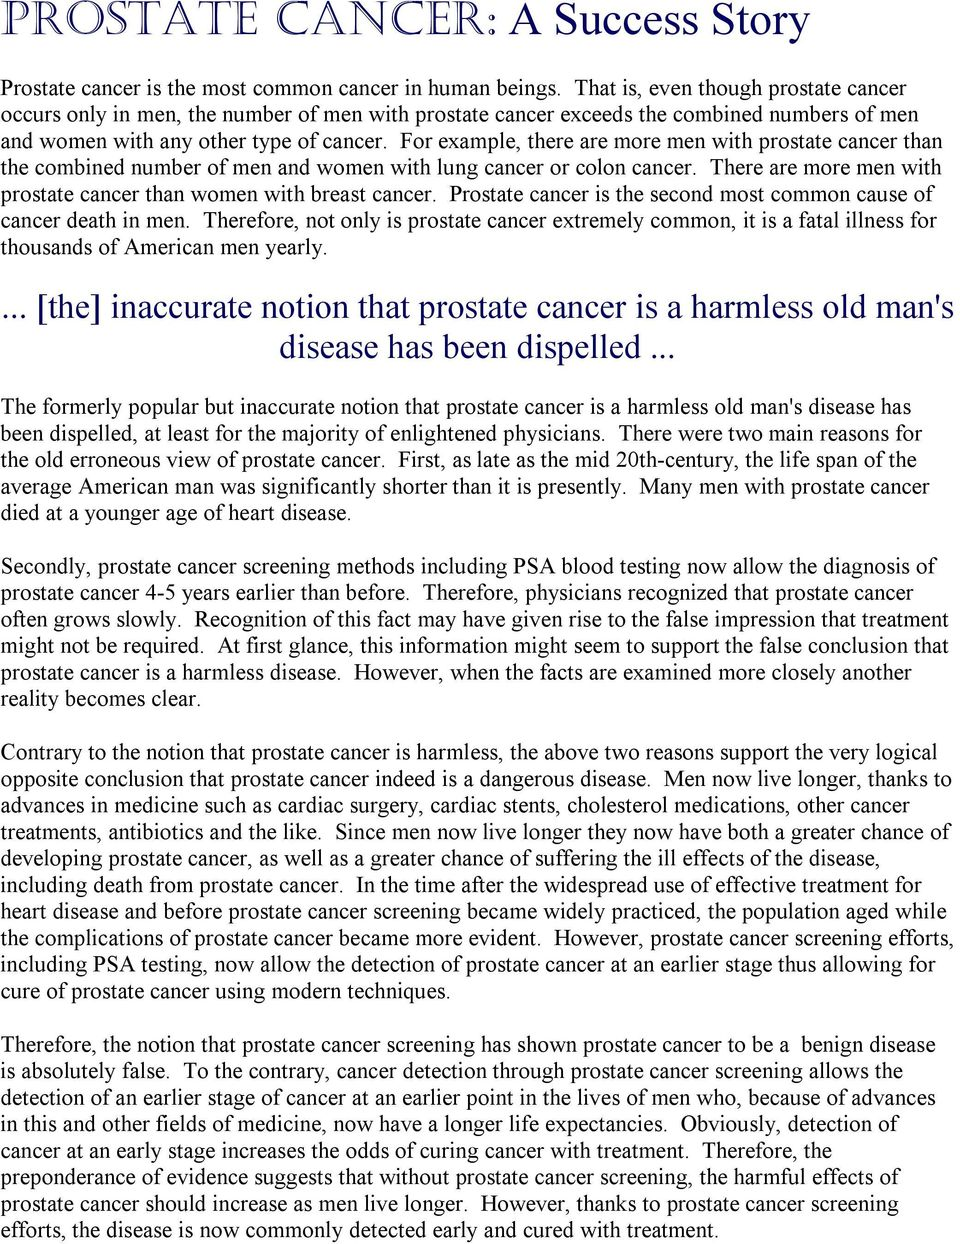 For example, there are more men with prostate cancer than the combined number of men and women with lung cancer or colon cancer. There are more men with prostate cancer than women with breast cancer.